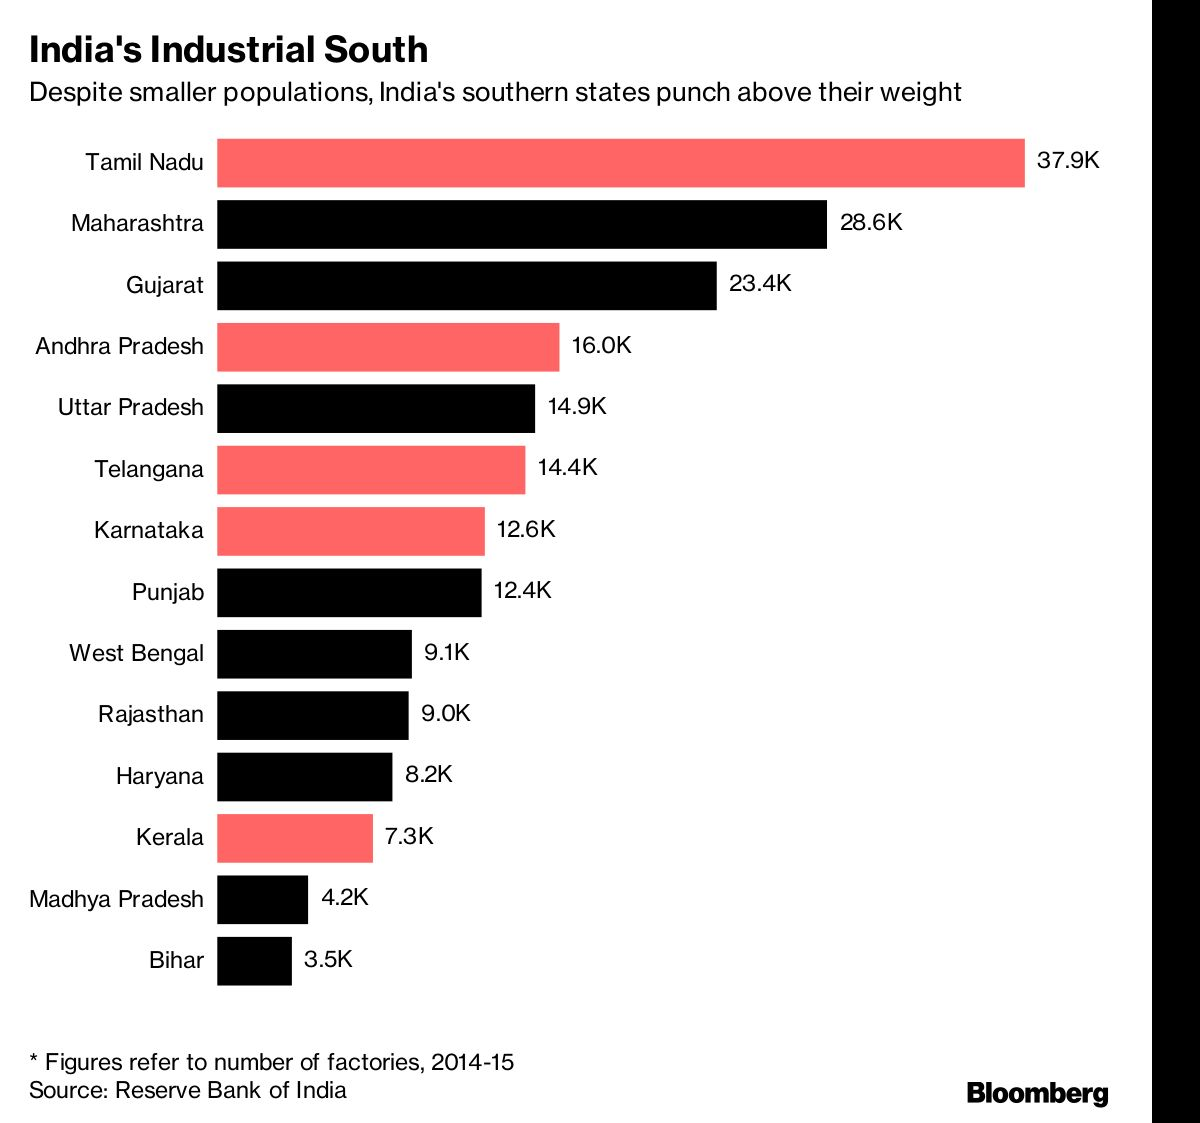 Chennai indias detroit struggles as new states become growth this trend may now be changing on account of the governments push to have states compete for business and investments with the goal that in the end all nvjuhfo Choice Image